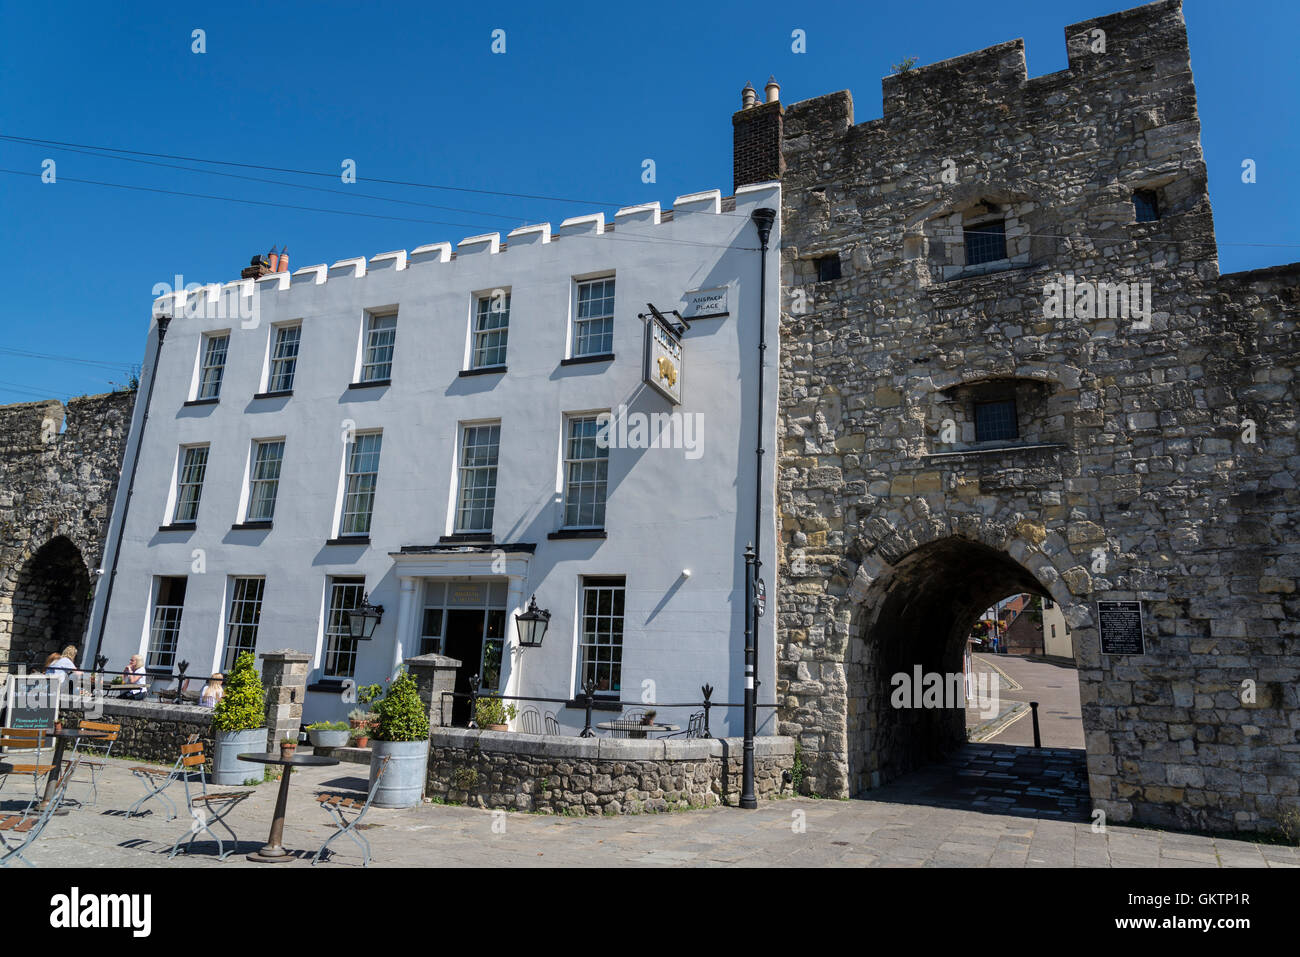 West Gate, Medieval Town Walls, Southampton, Hampshire, England, UK - Stock Image